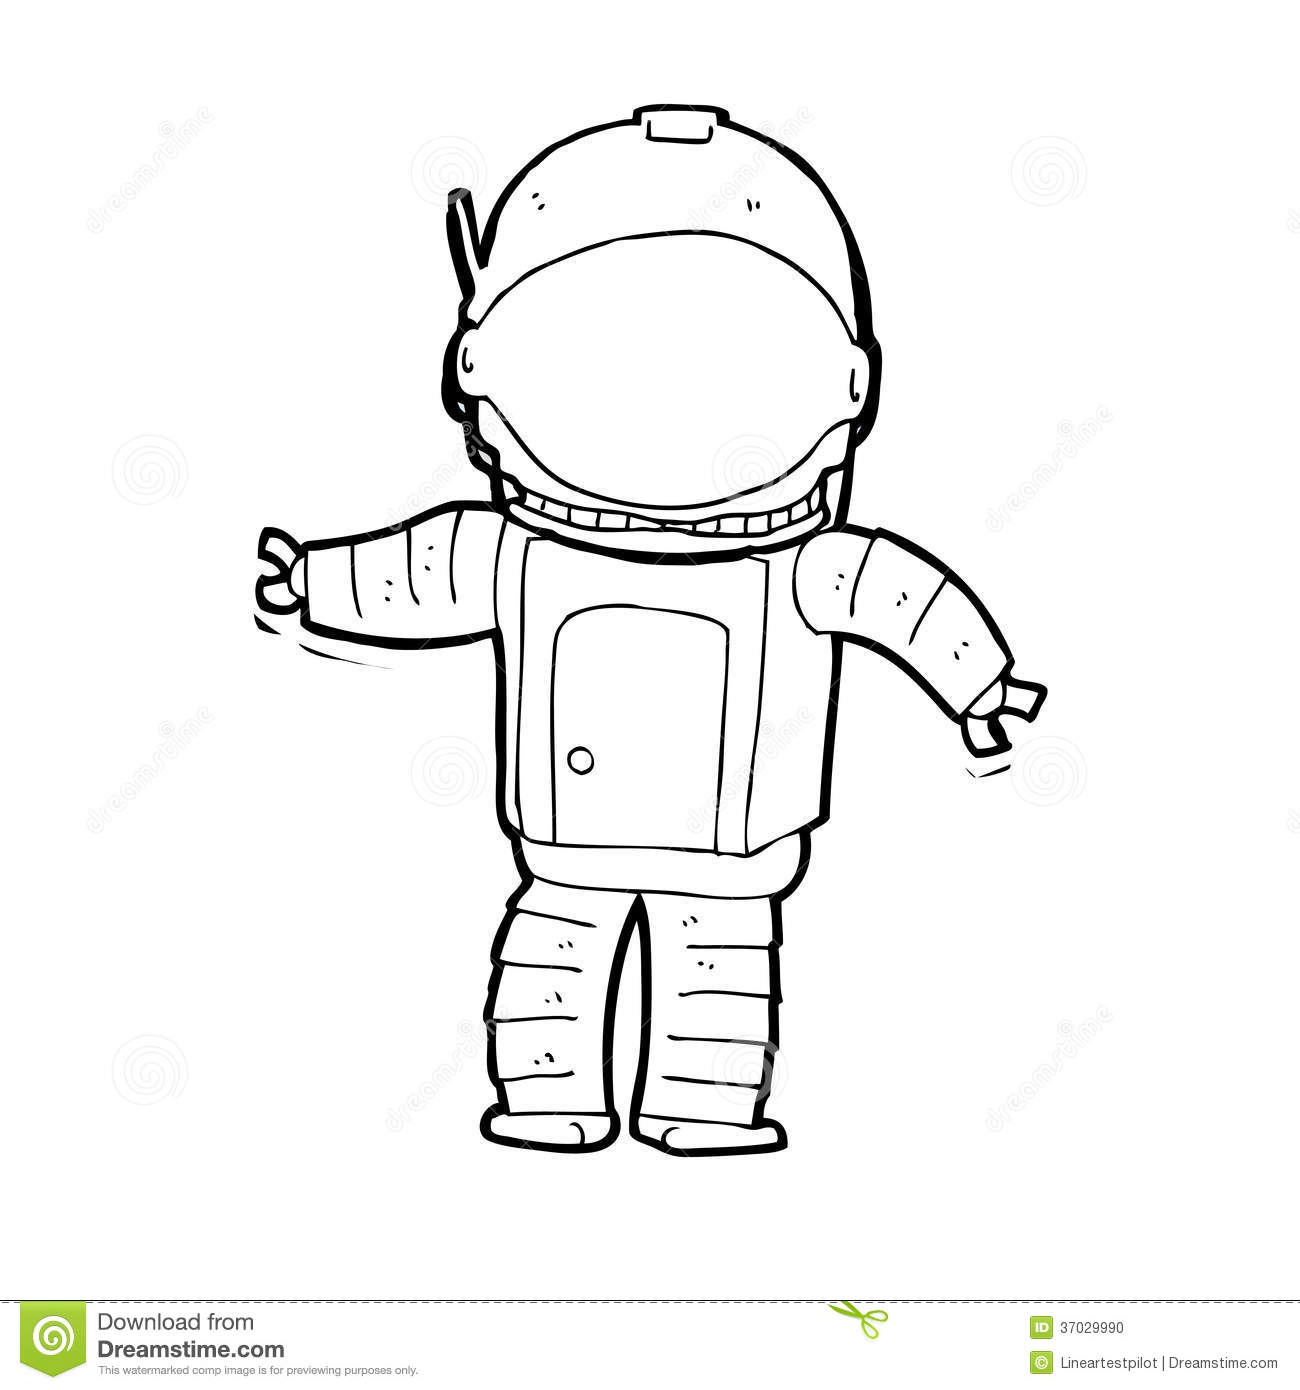 astronaut clip art black and white - photo #28